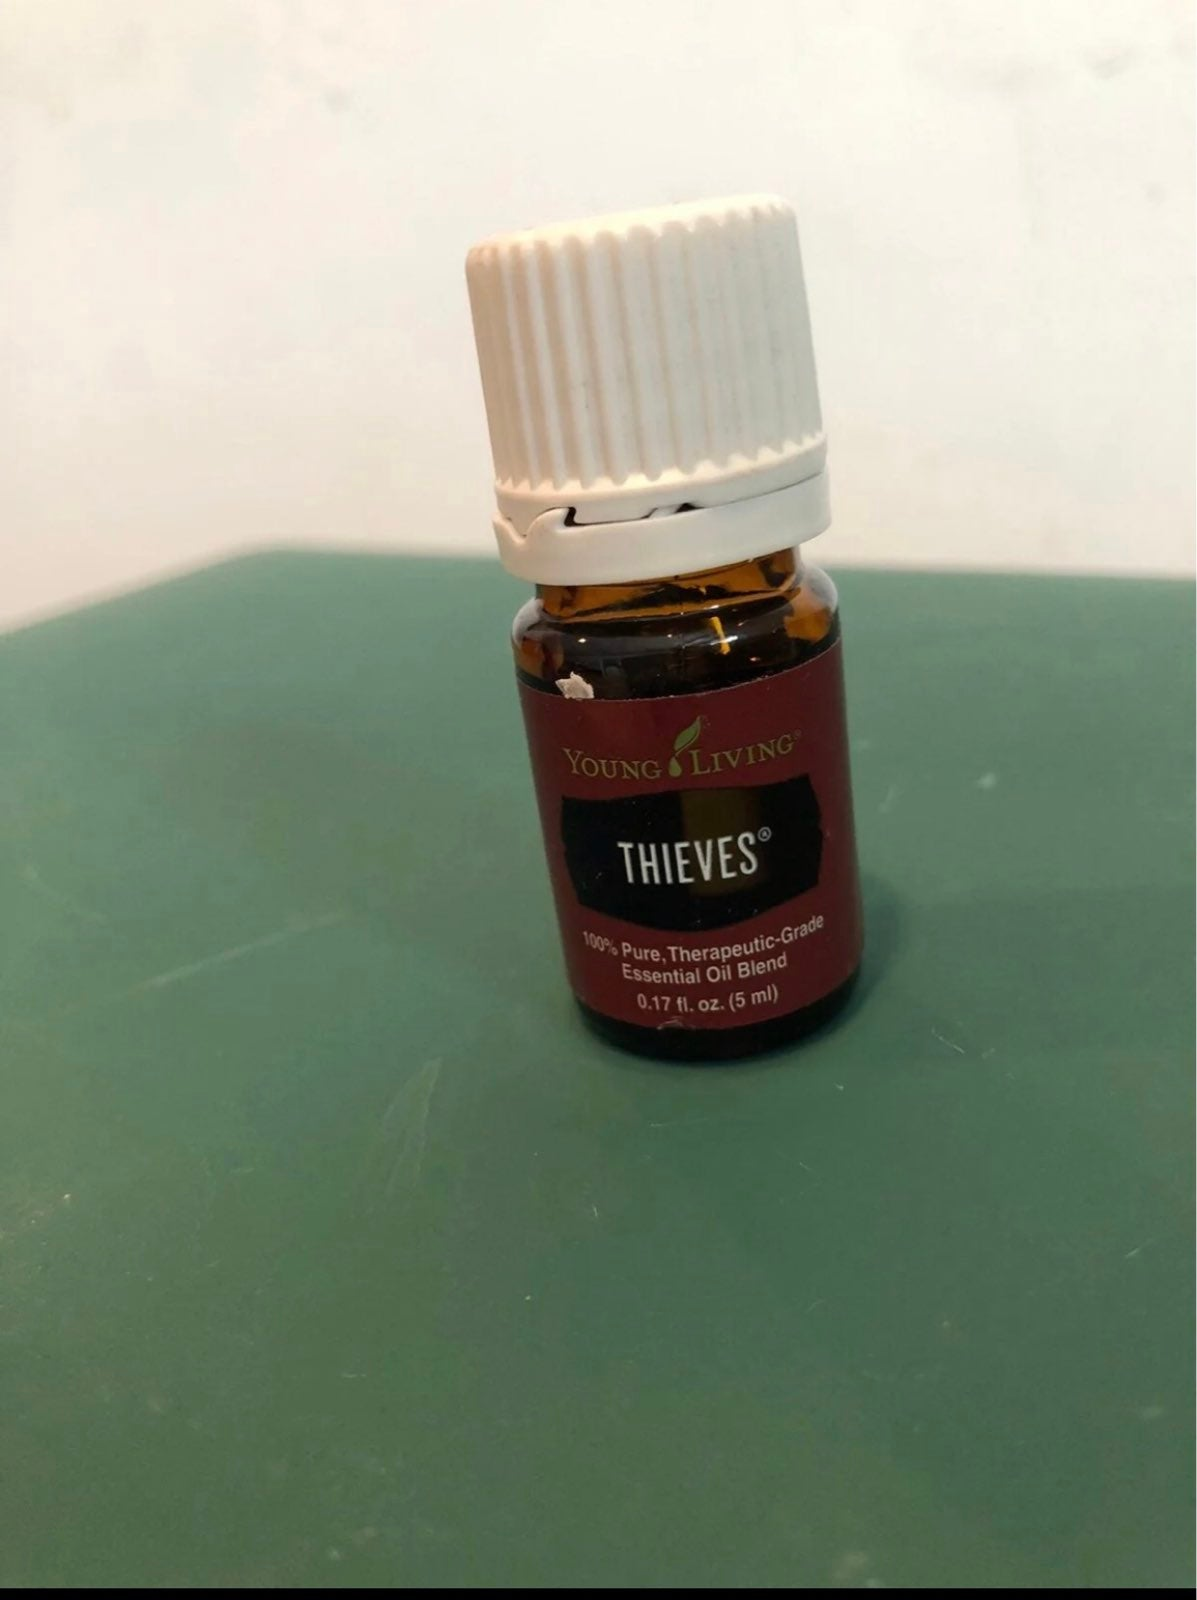 Unopened Young Living thieves